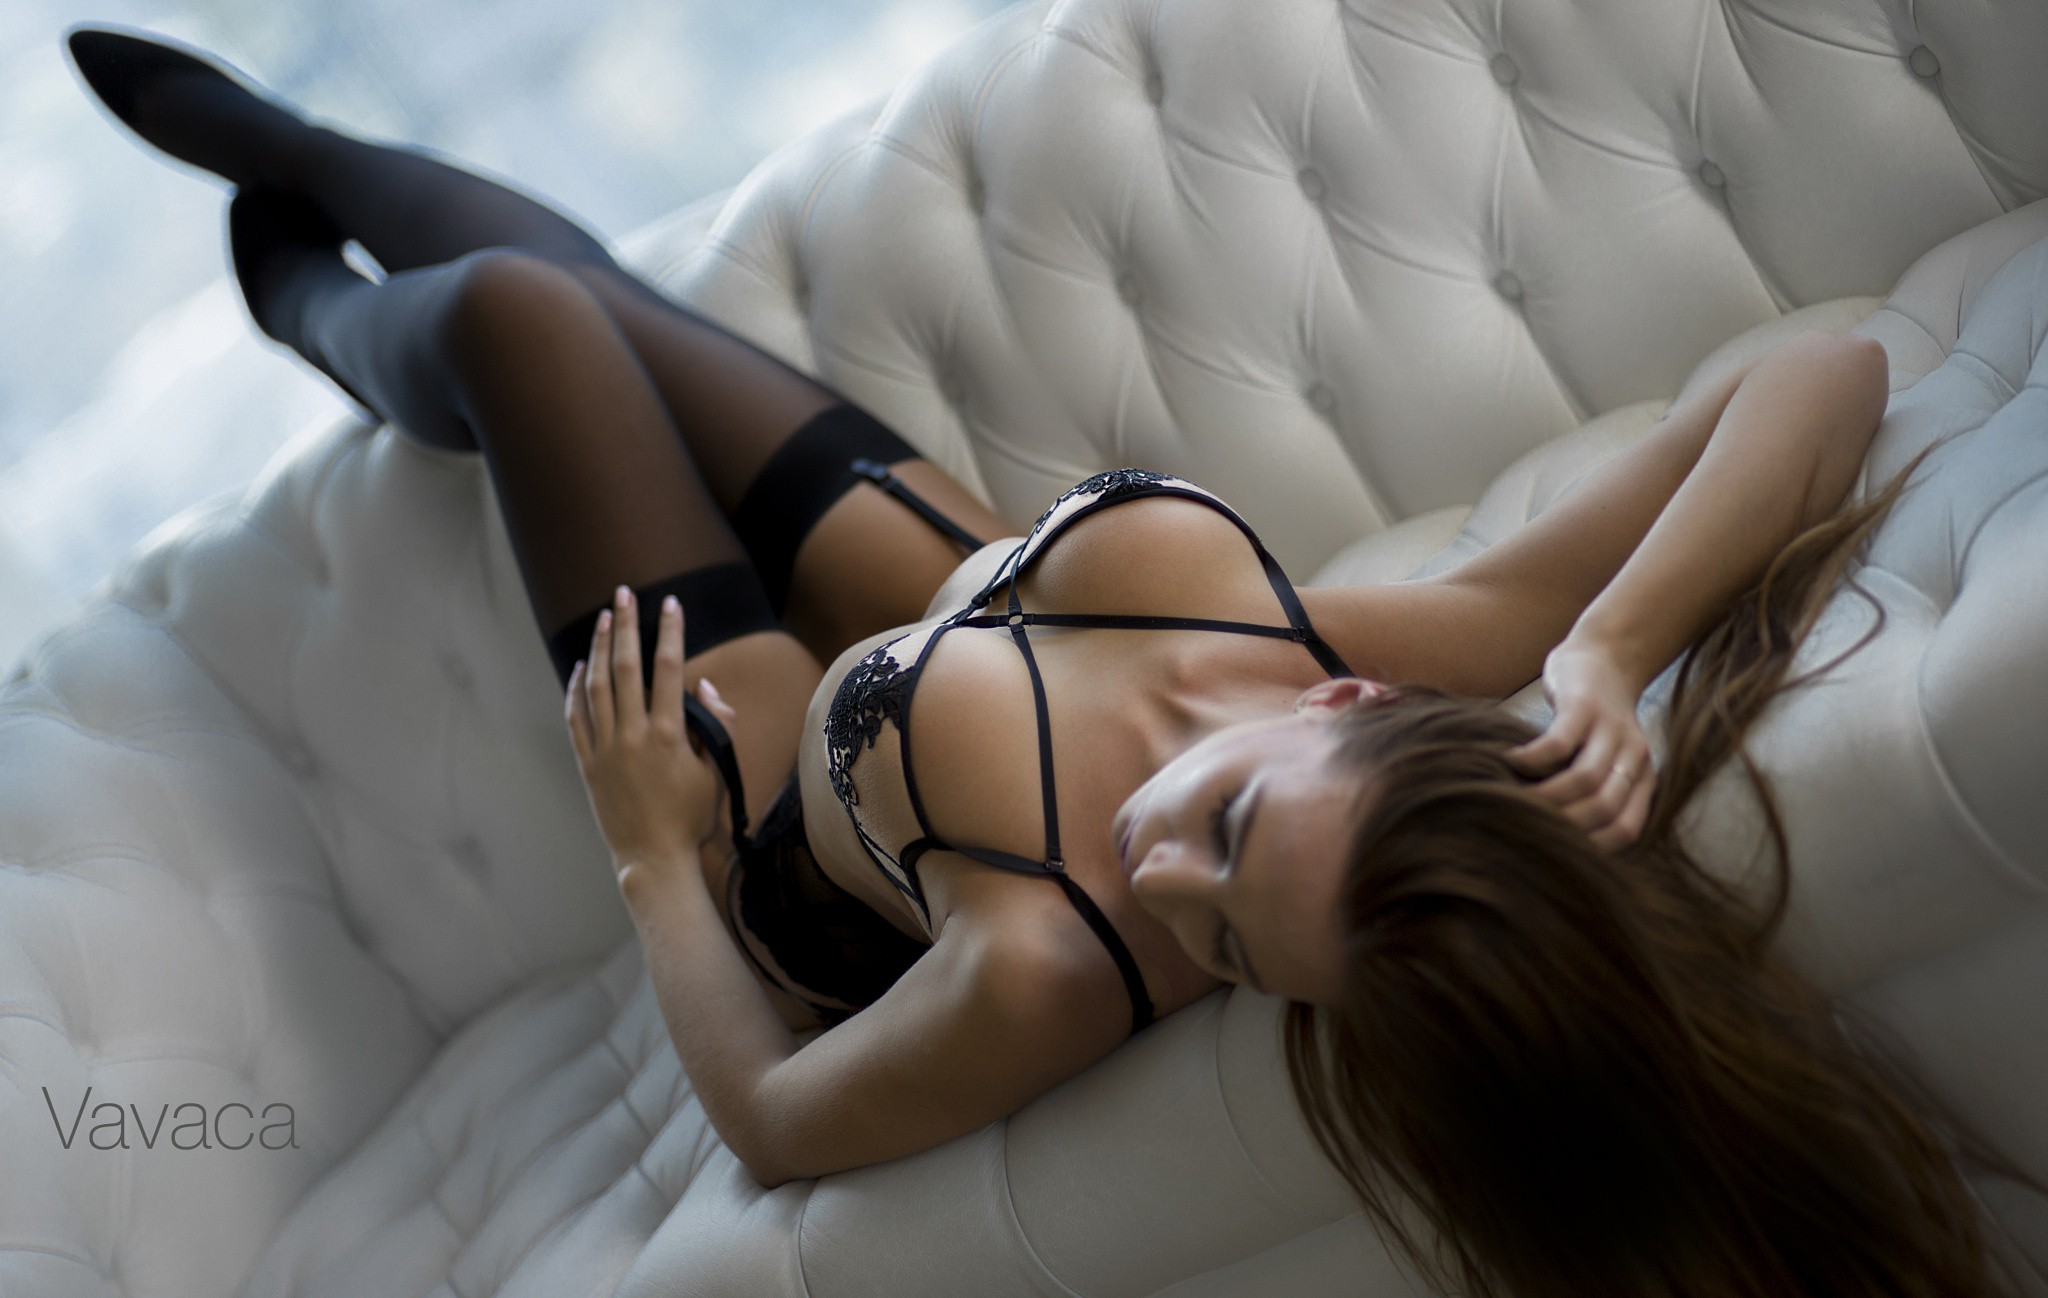 download 2048x1298 stockings model couch lingerie bra